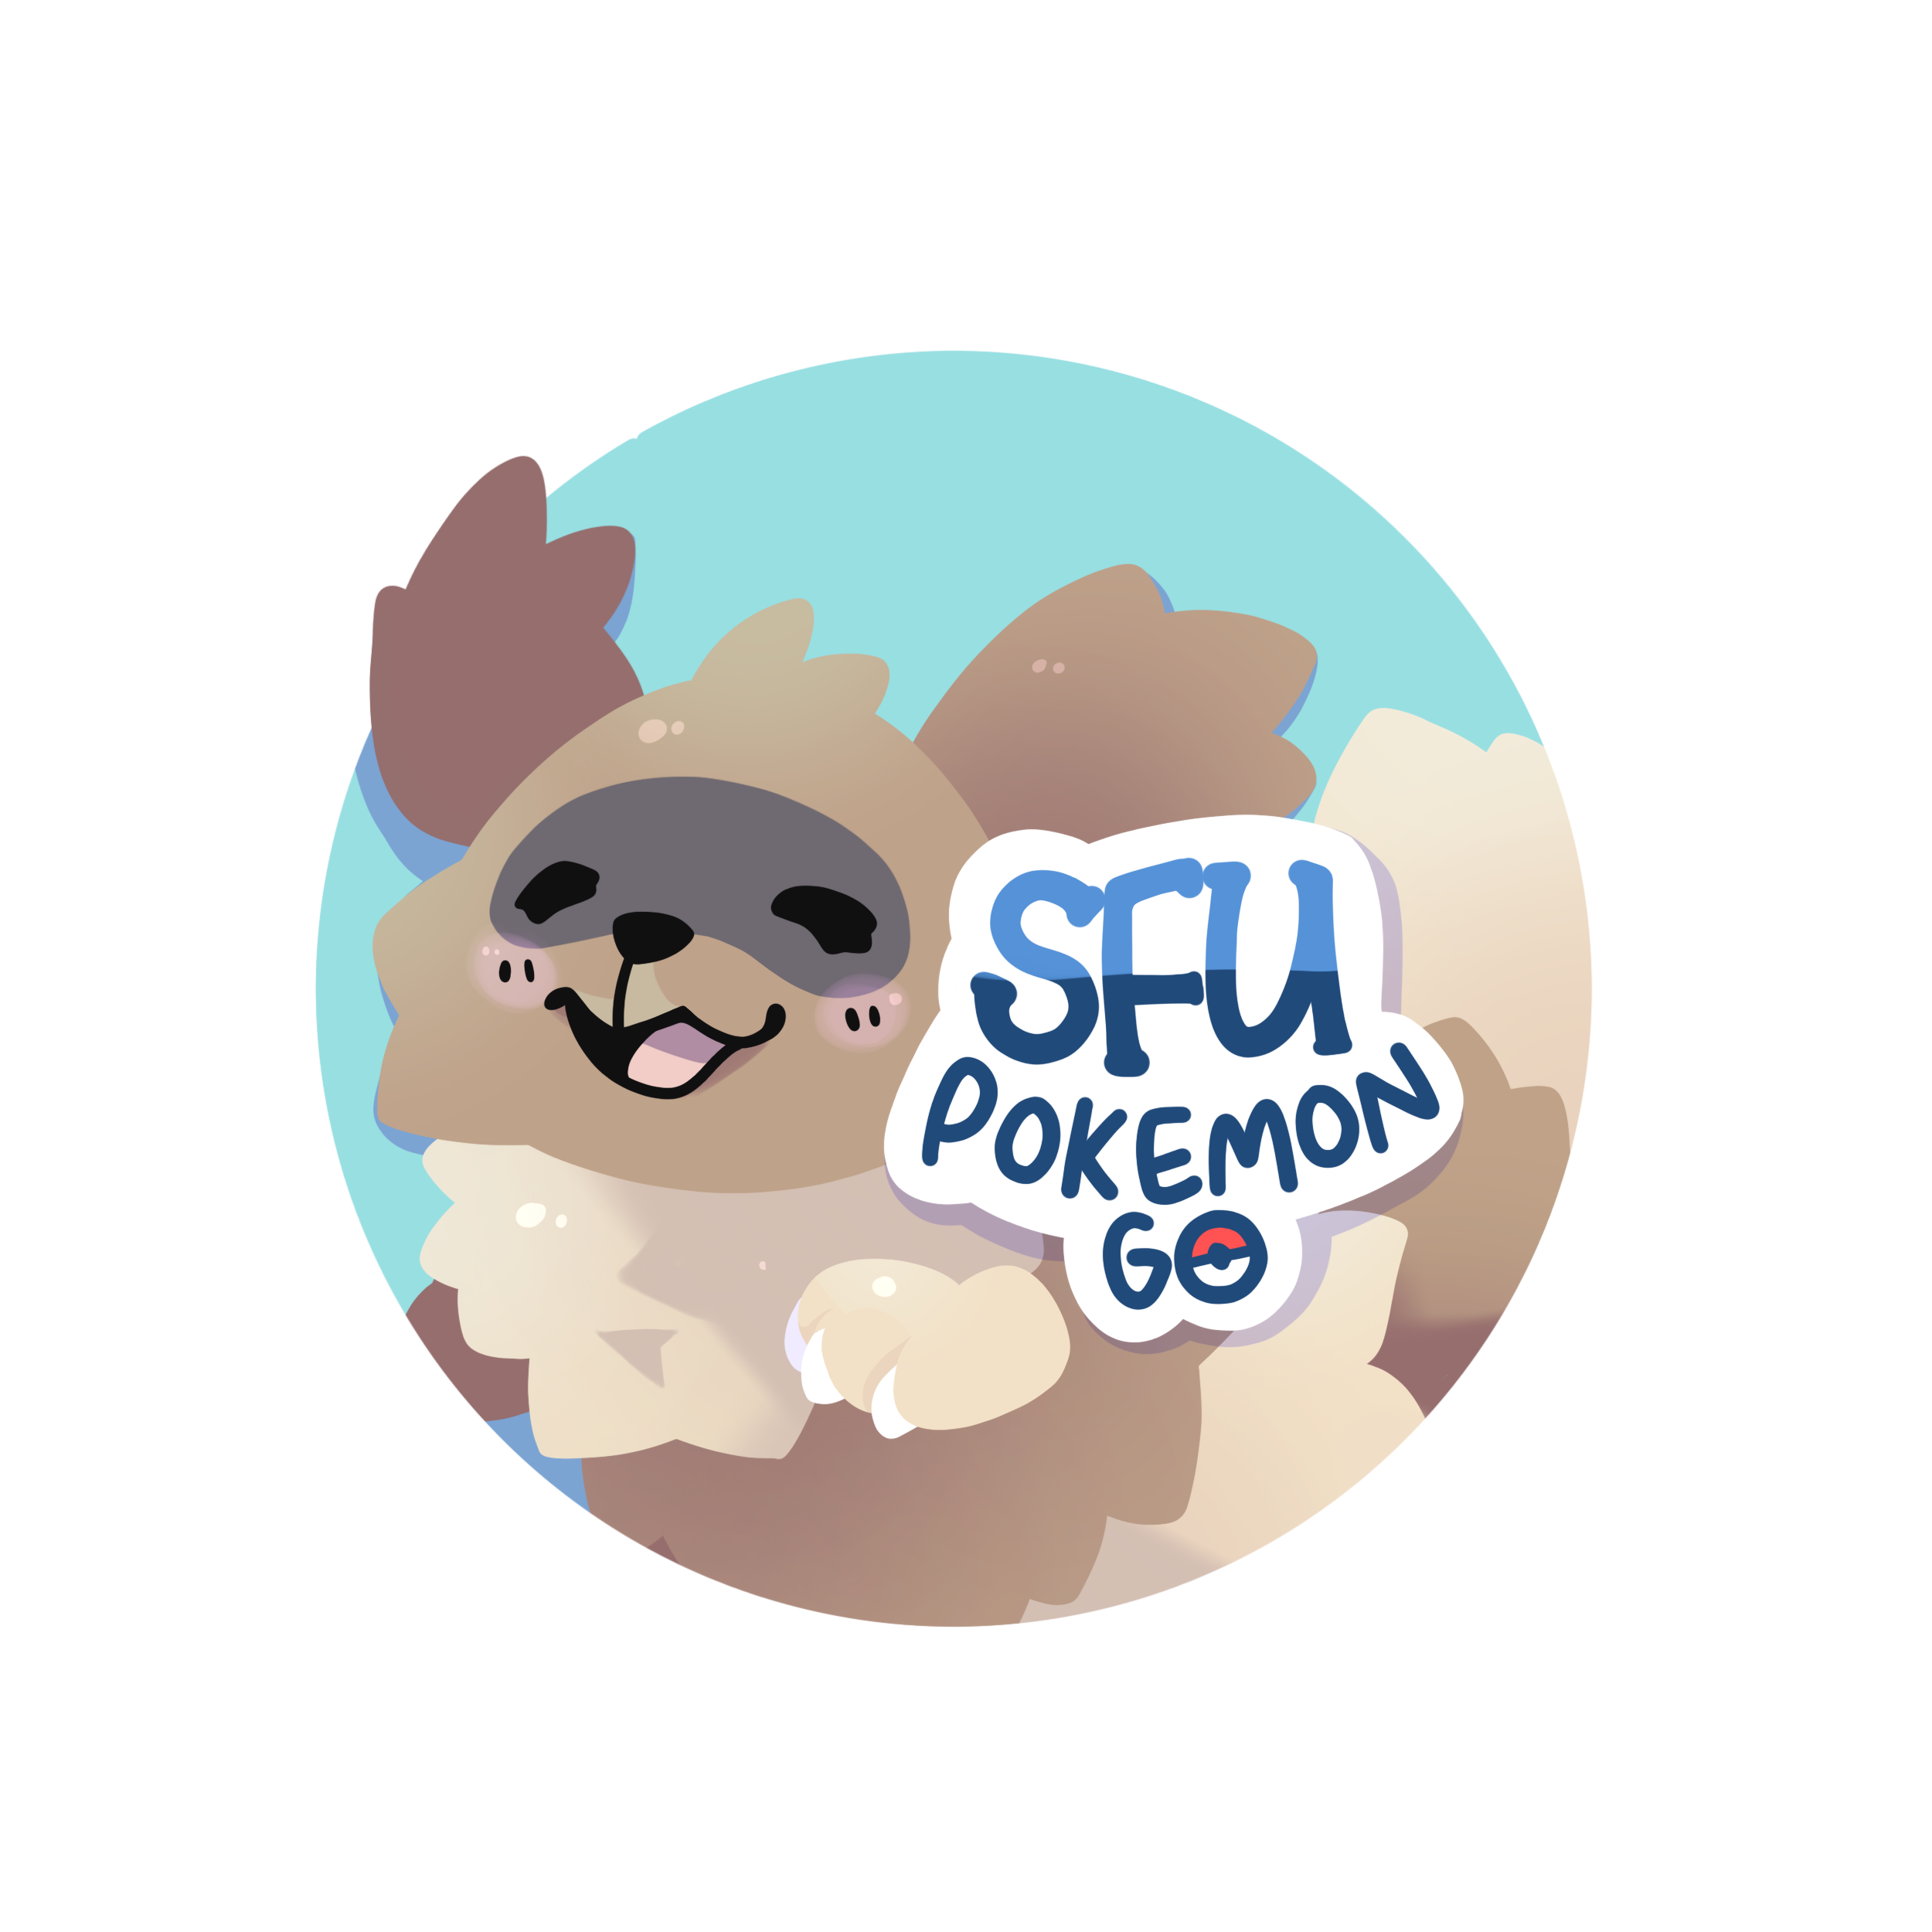 SFU Pokemon GO